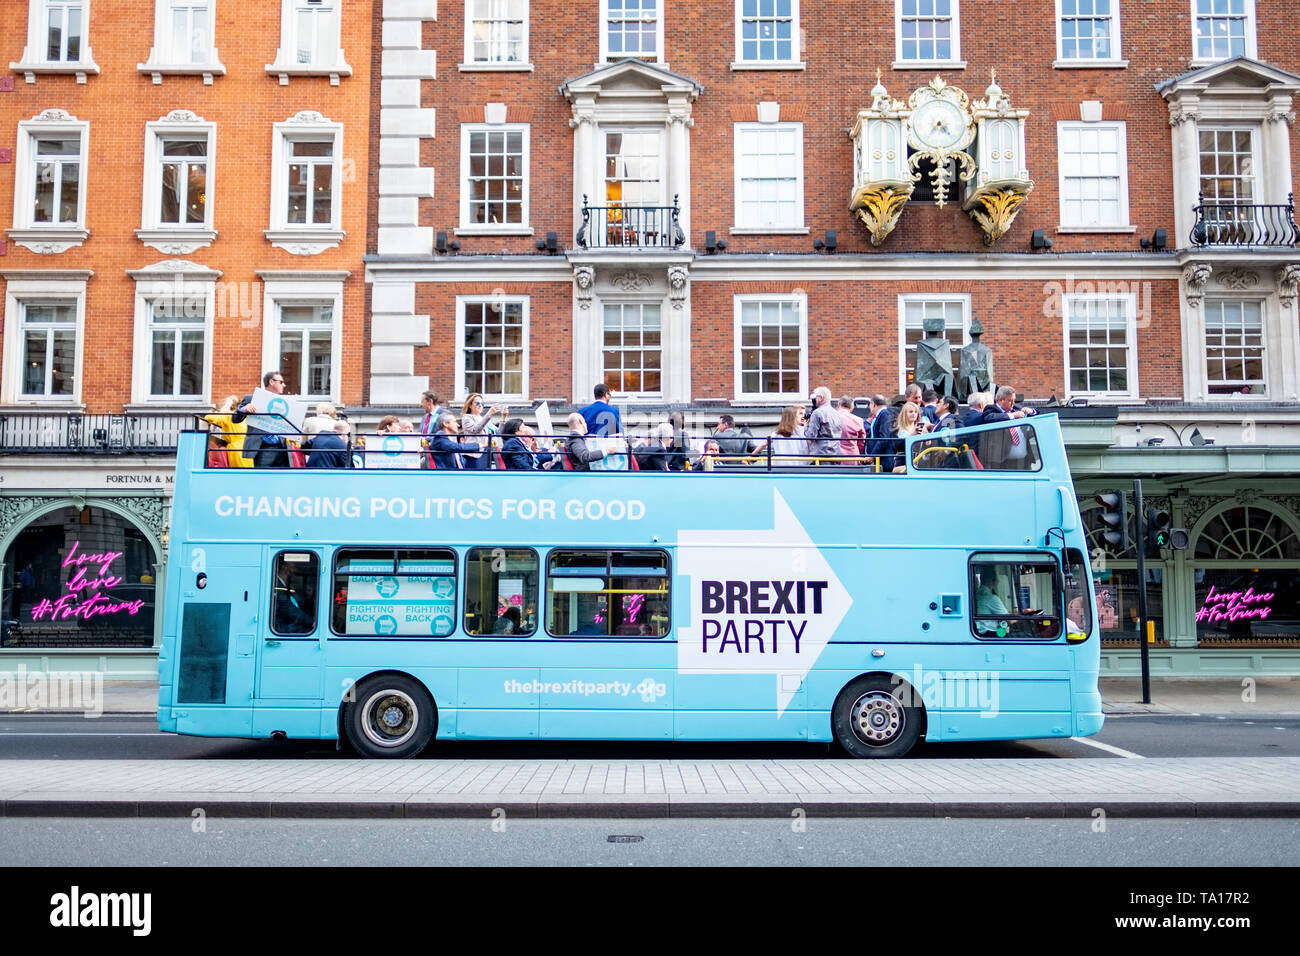 LONDON- MAY 21st 2019: The Brexit Party bus on Piccadilly in London's West End- campaigning ahead of the upcoming European elections Stock Photo